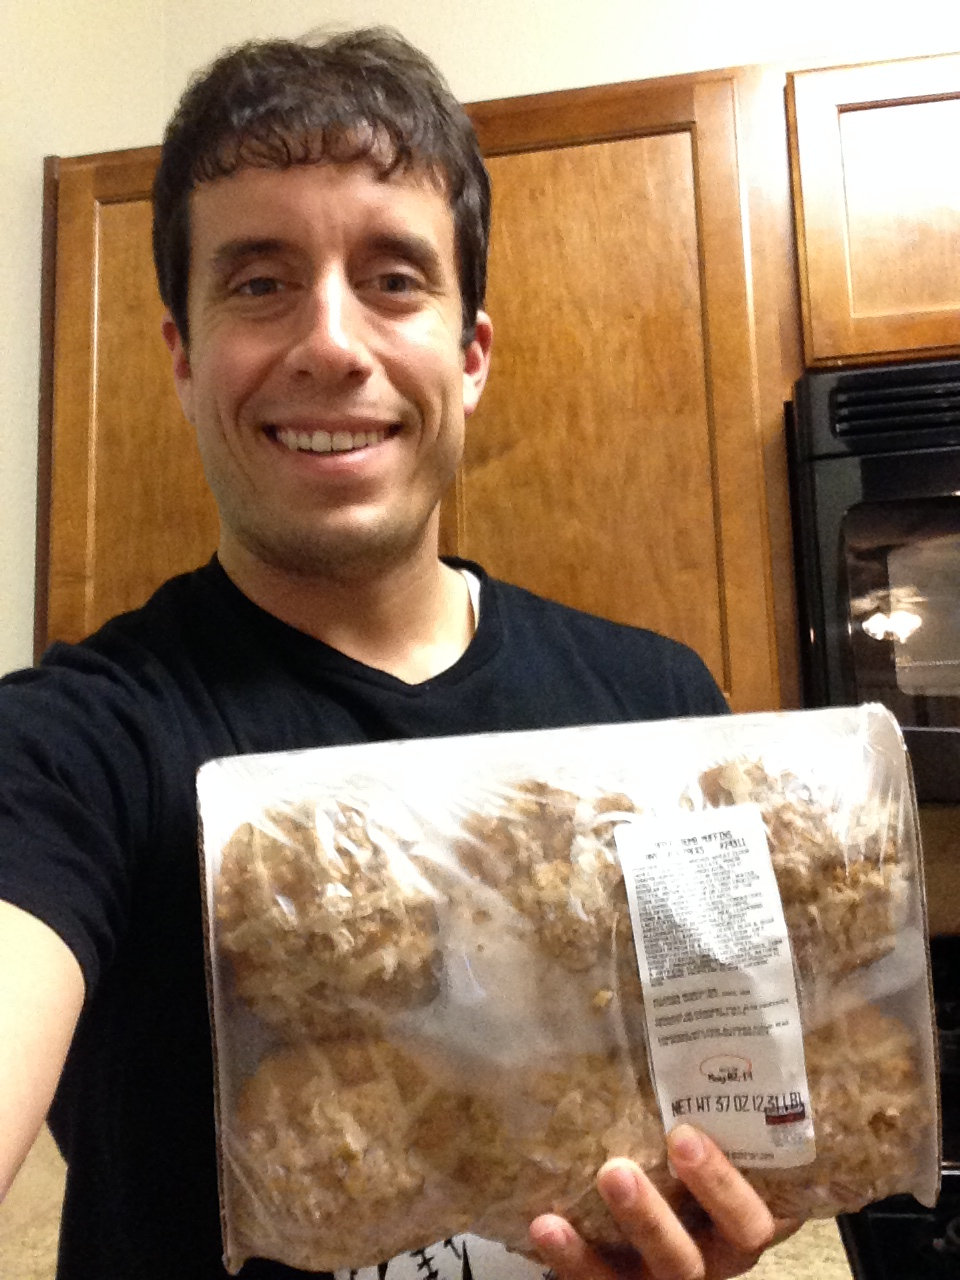 Me with some frozen Apple Crumb Costco muffins.